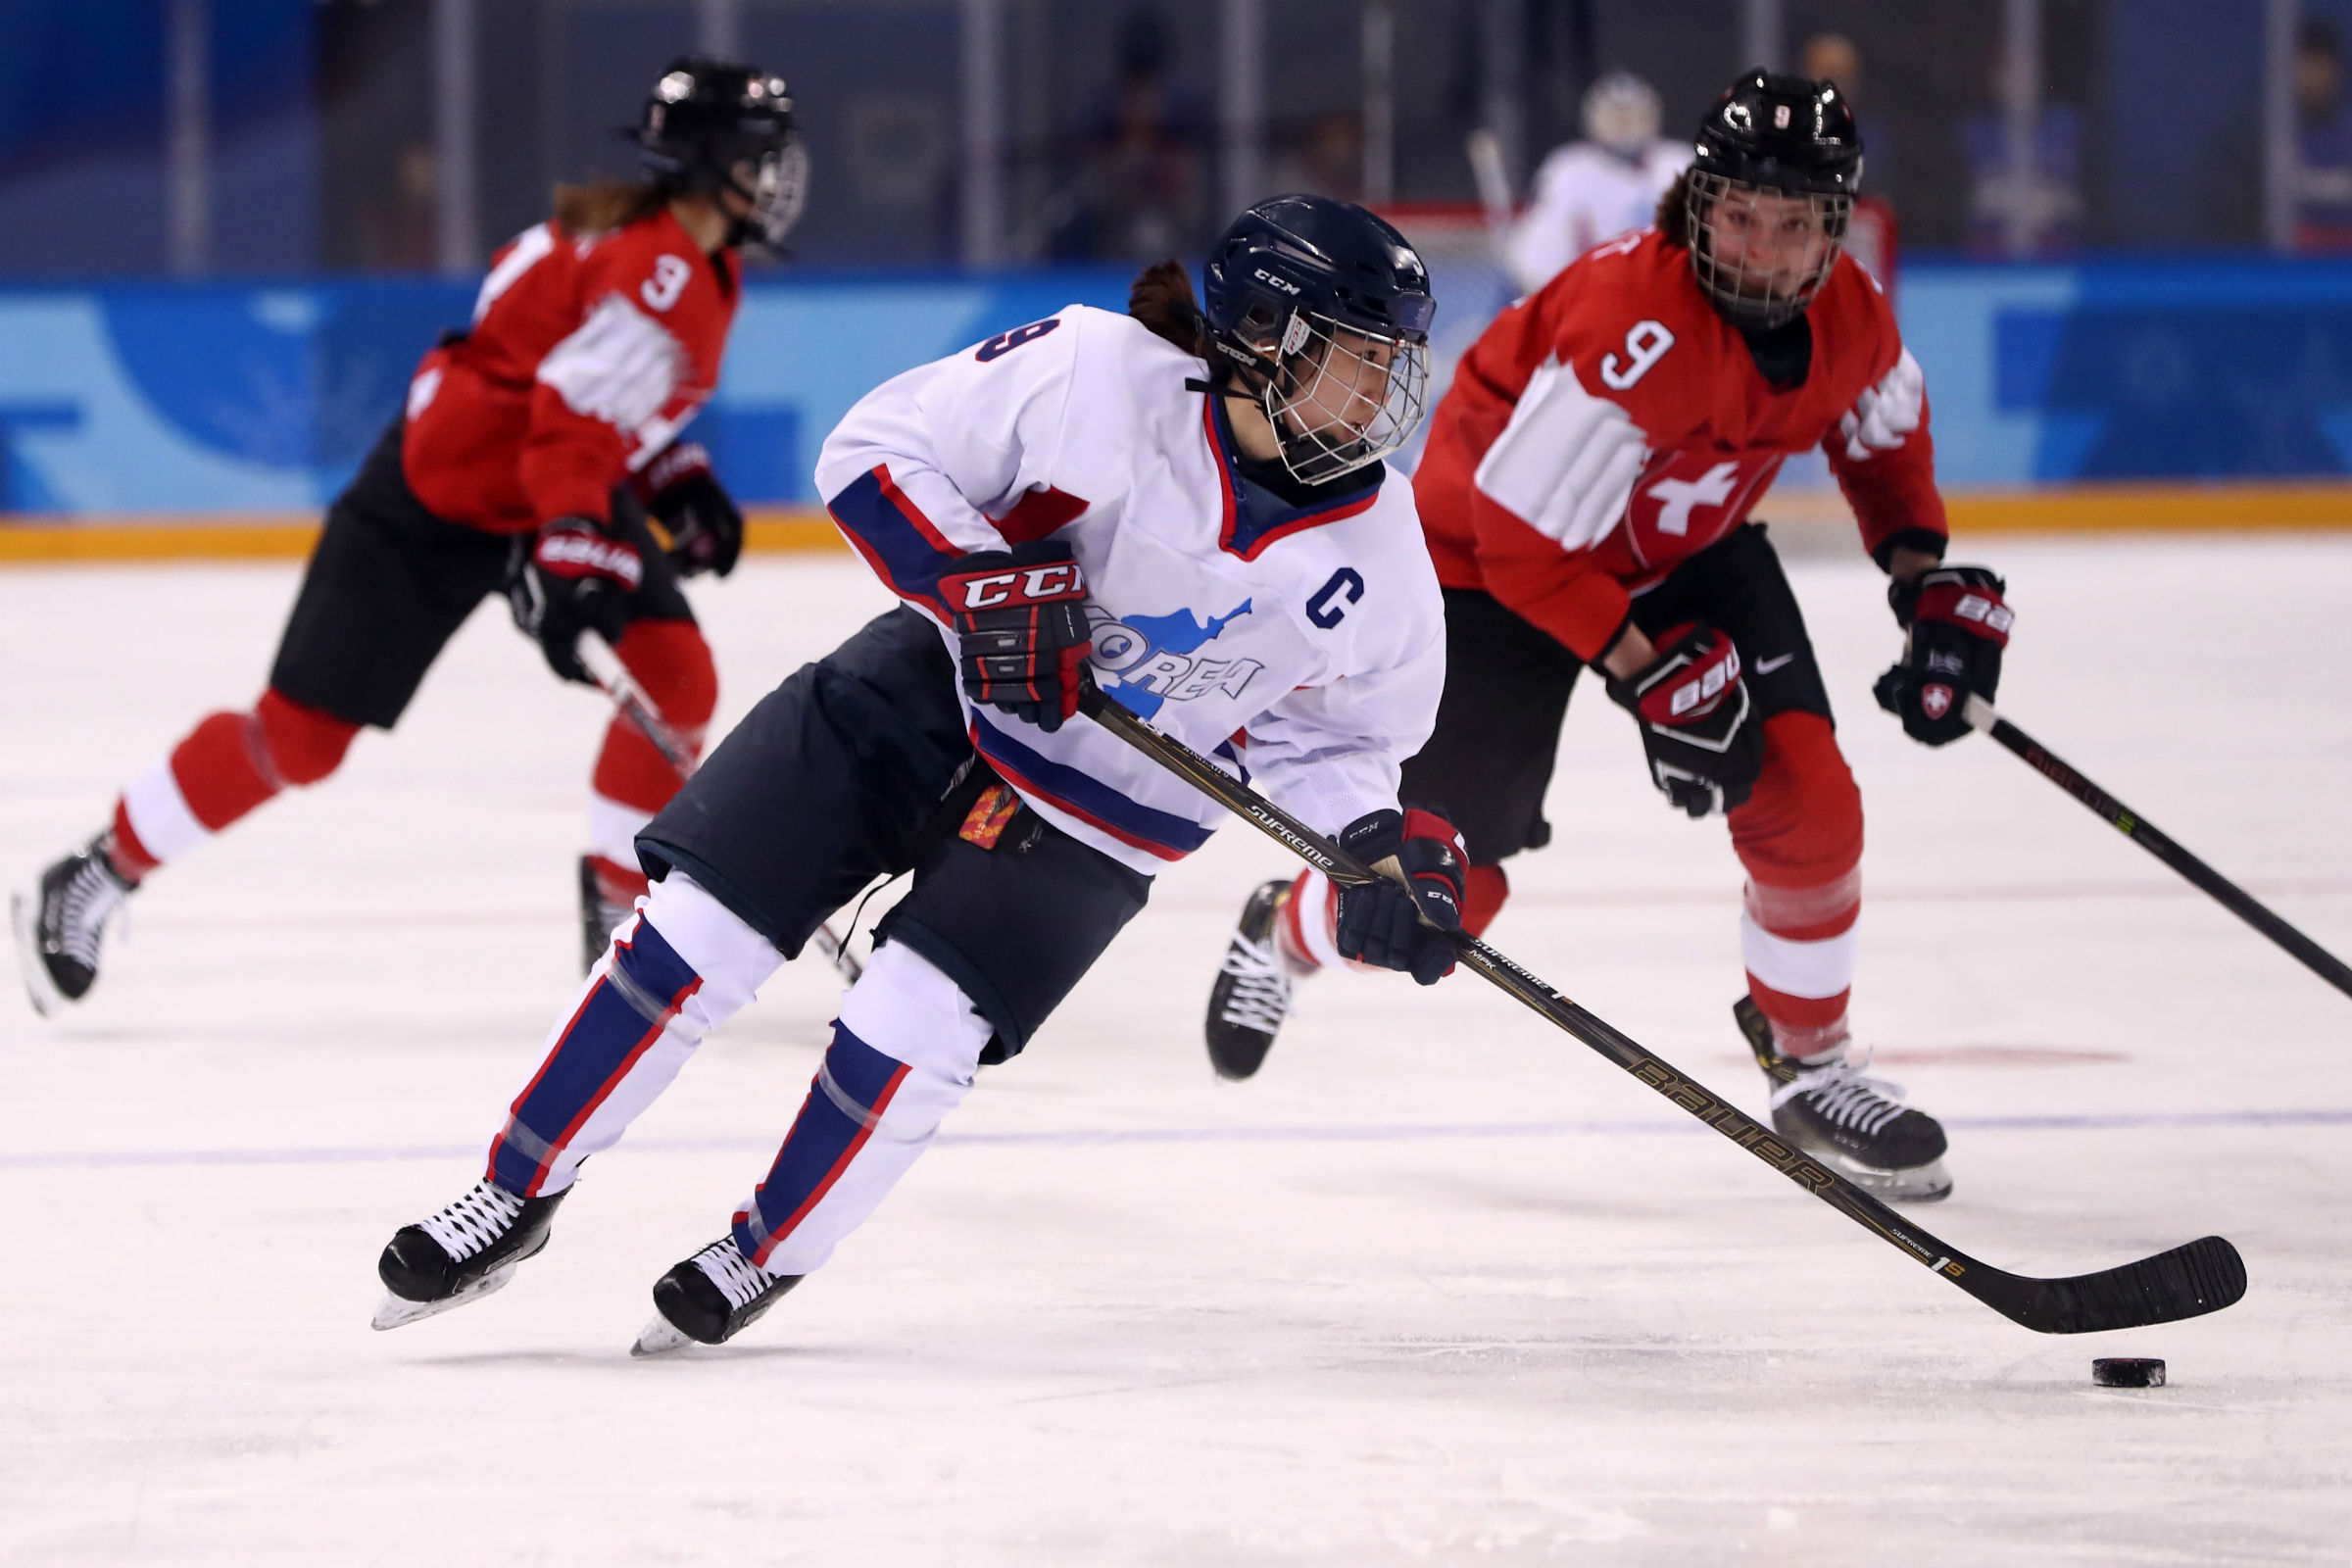 Ice Hockey - Women